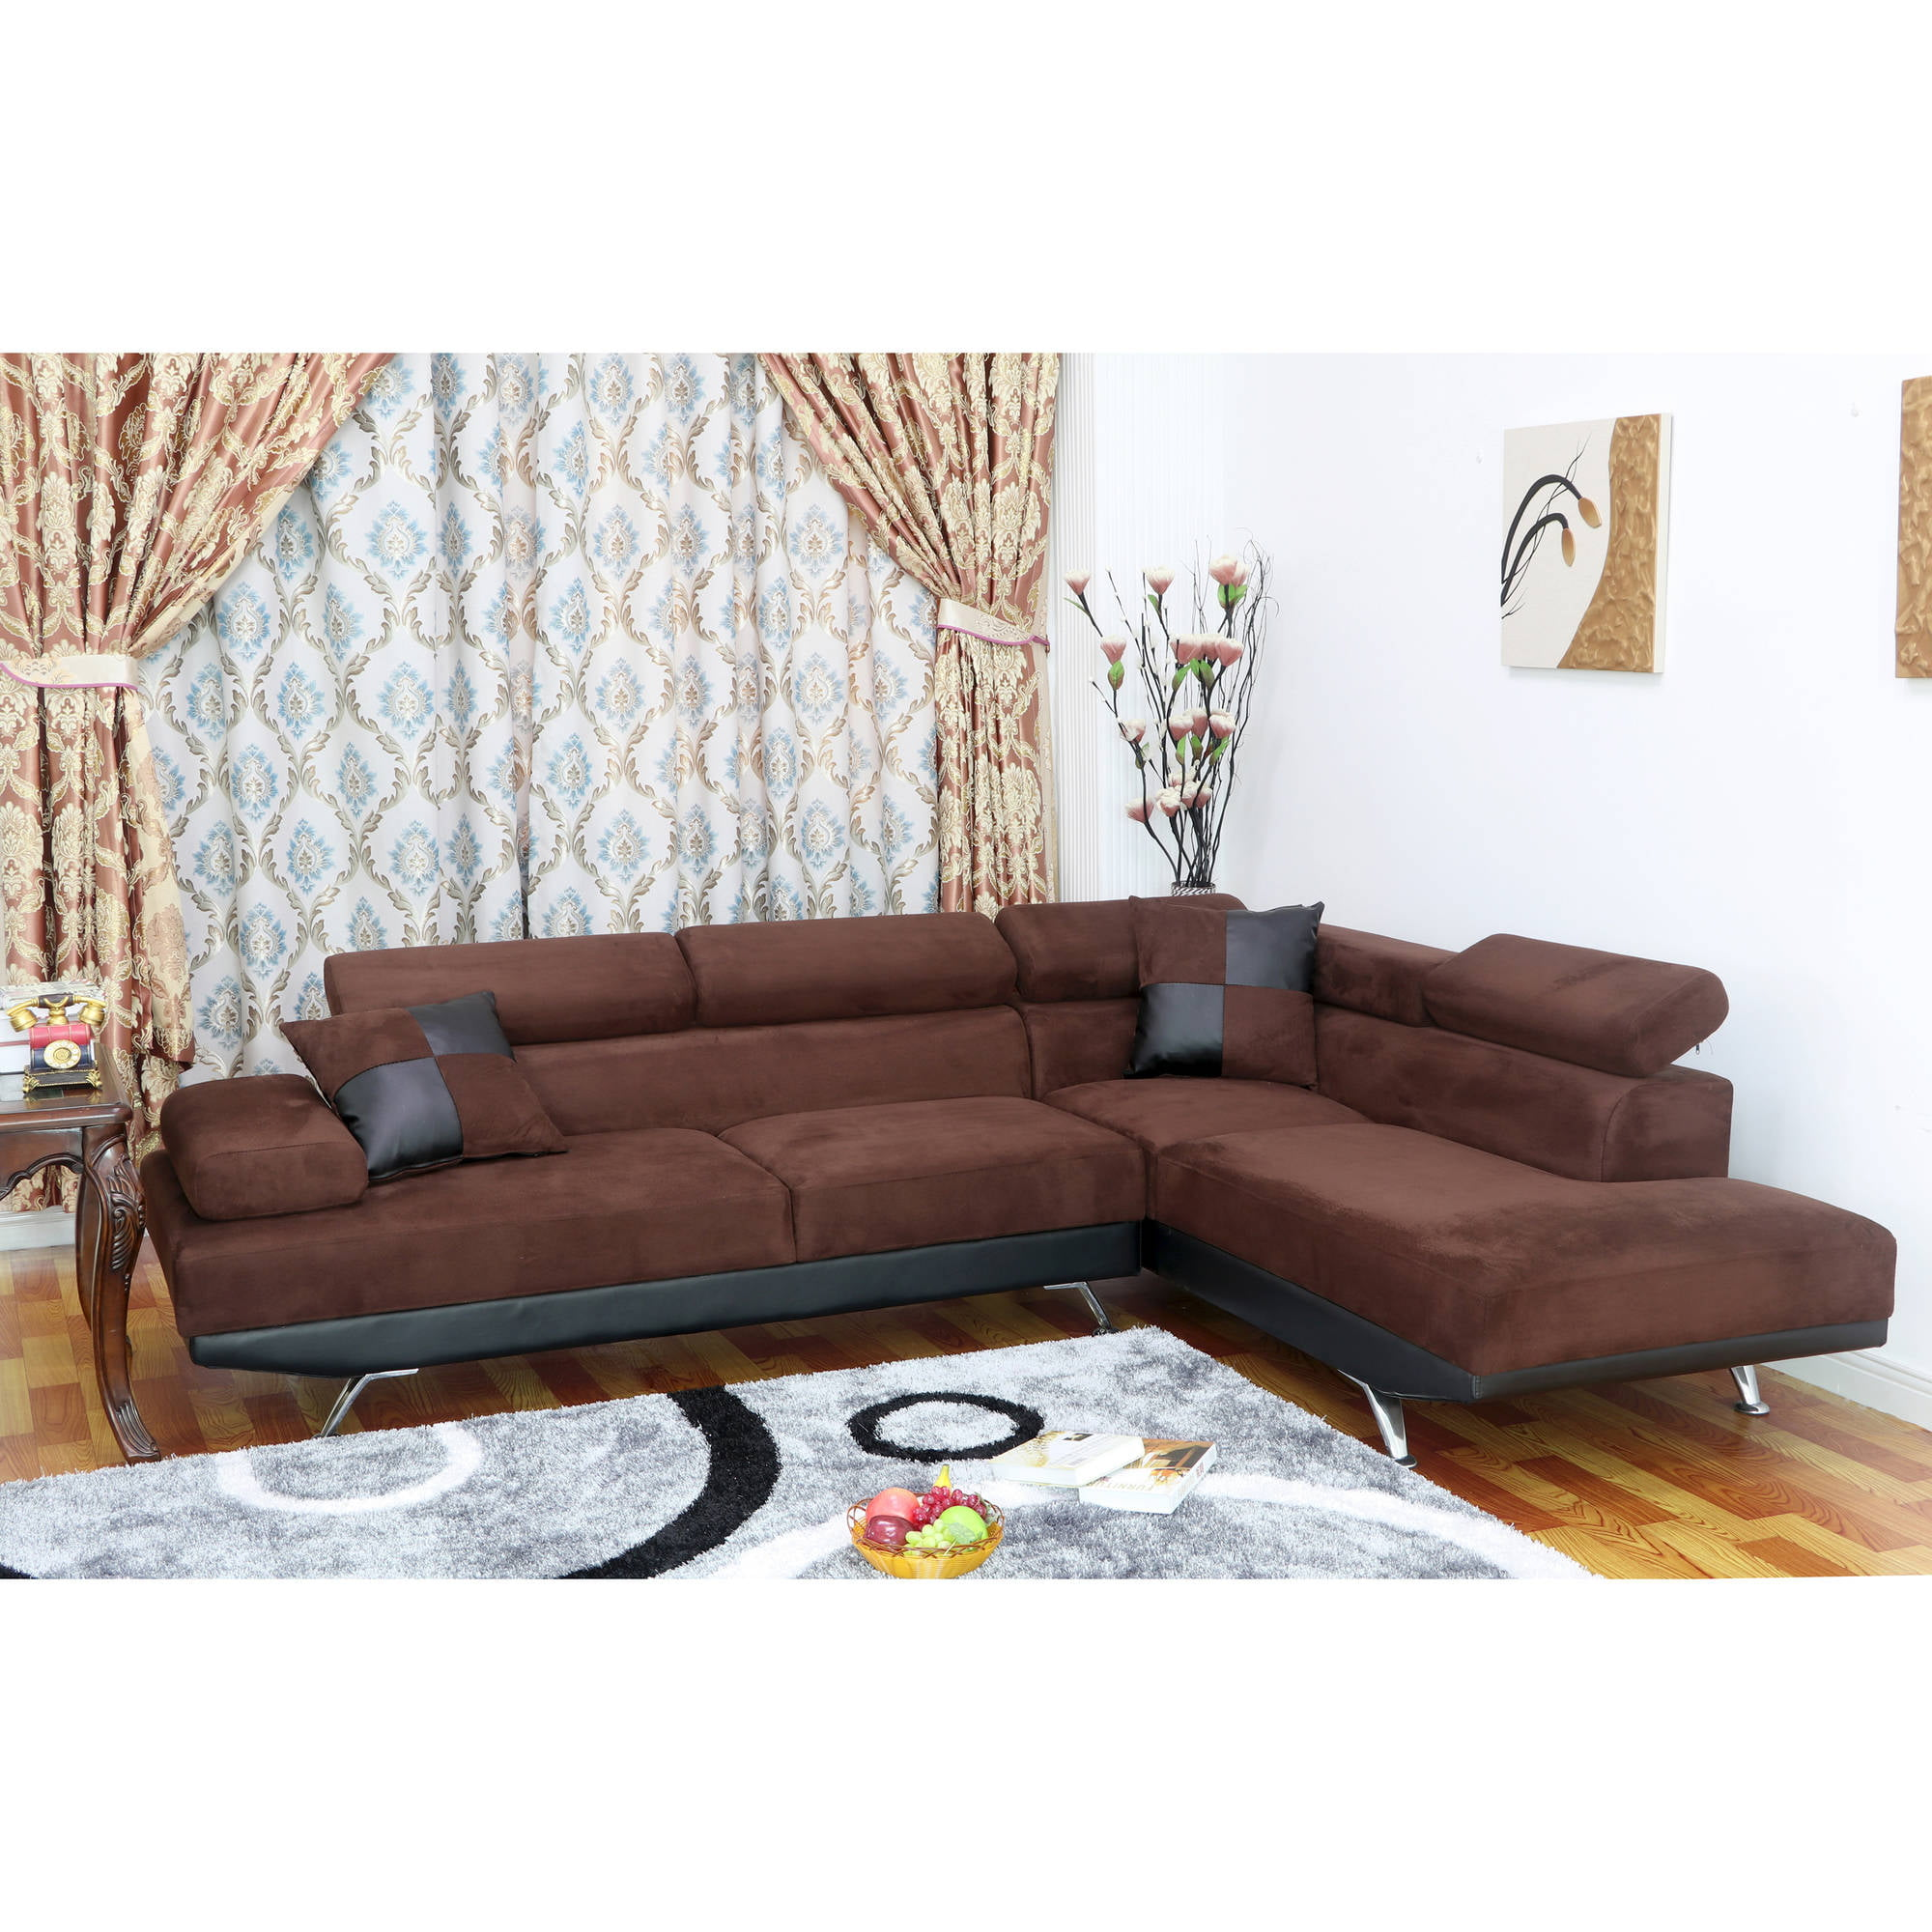 UFE Sofia 2 Piece Microfiber Modern Right Facing Chaise Sectional